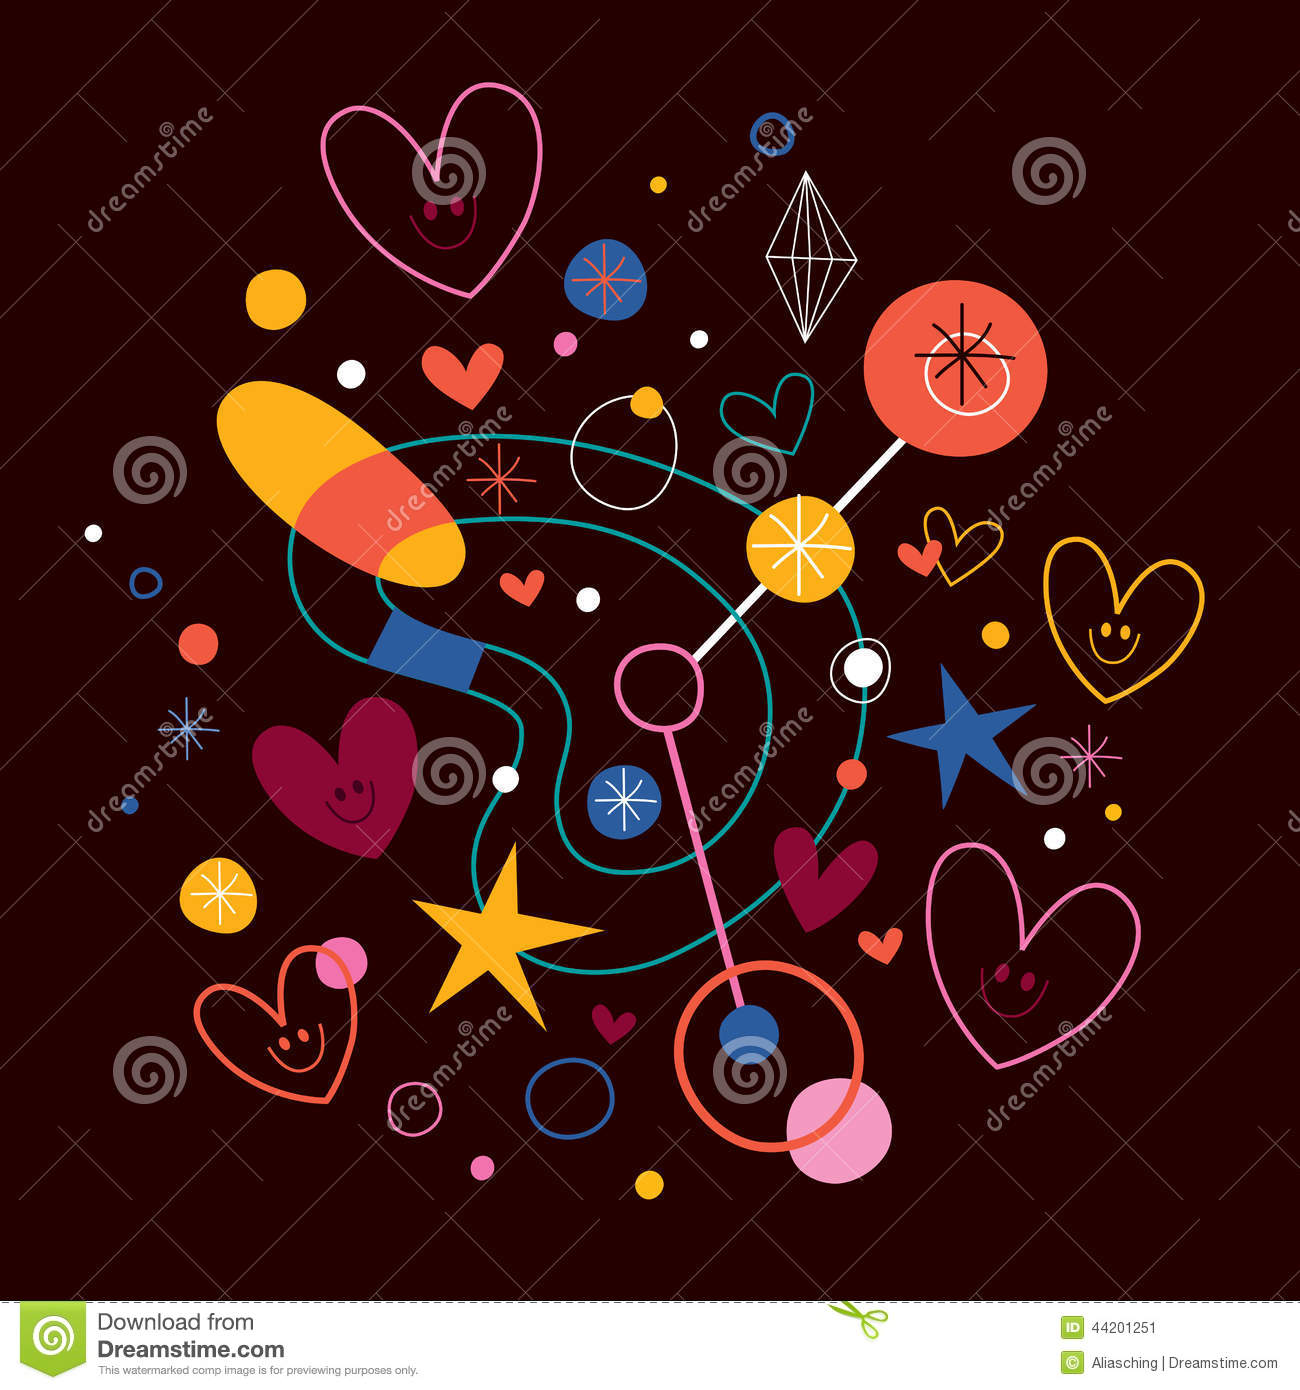 Abstract art illustration with cute hearts stock vector for Cute abstract art